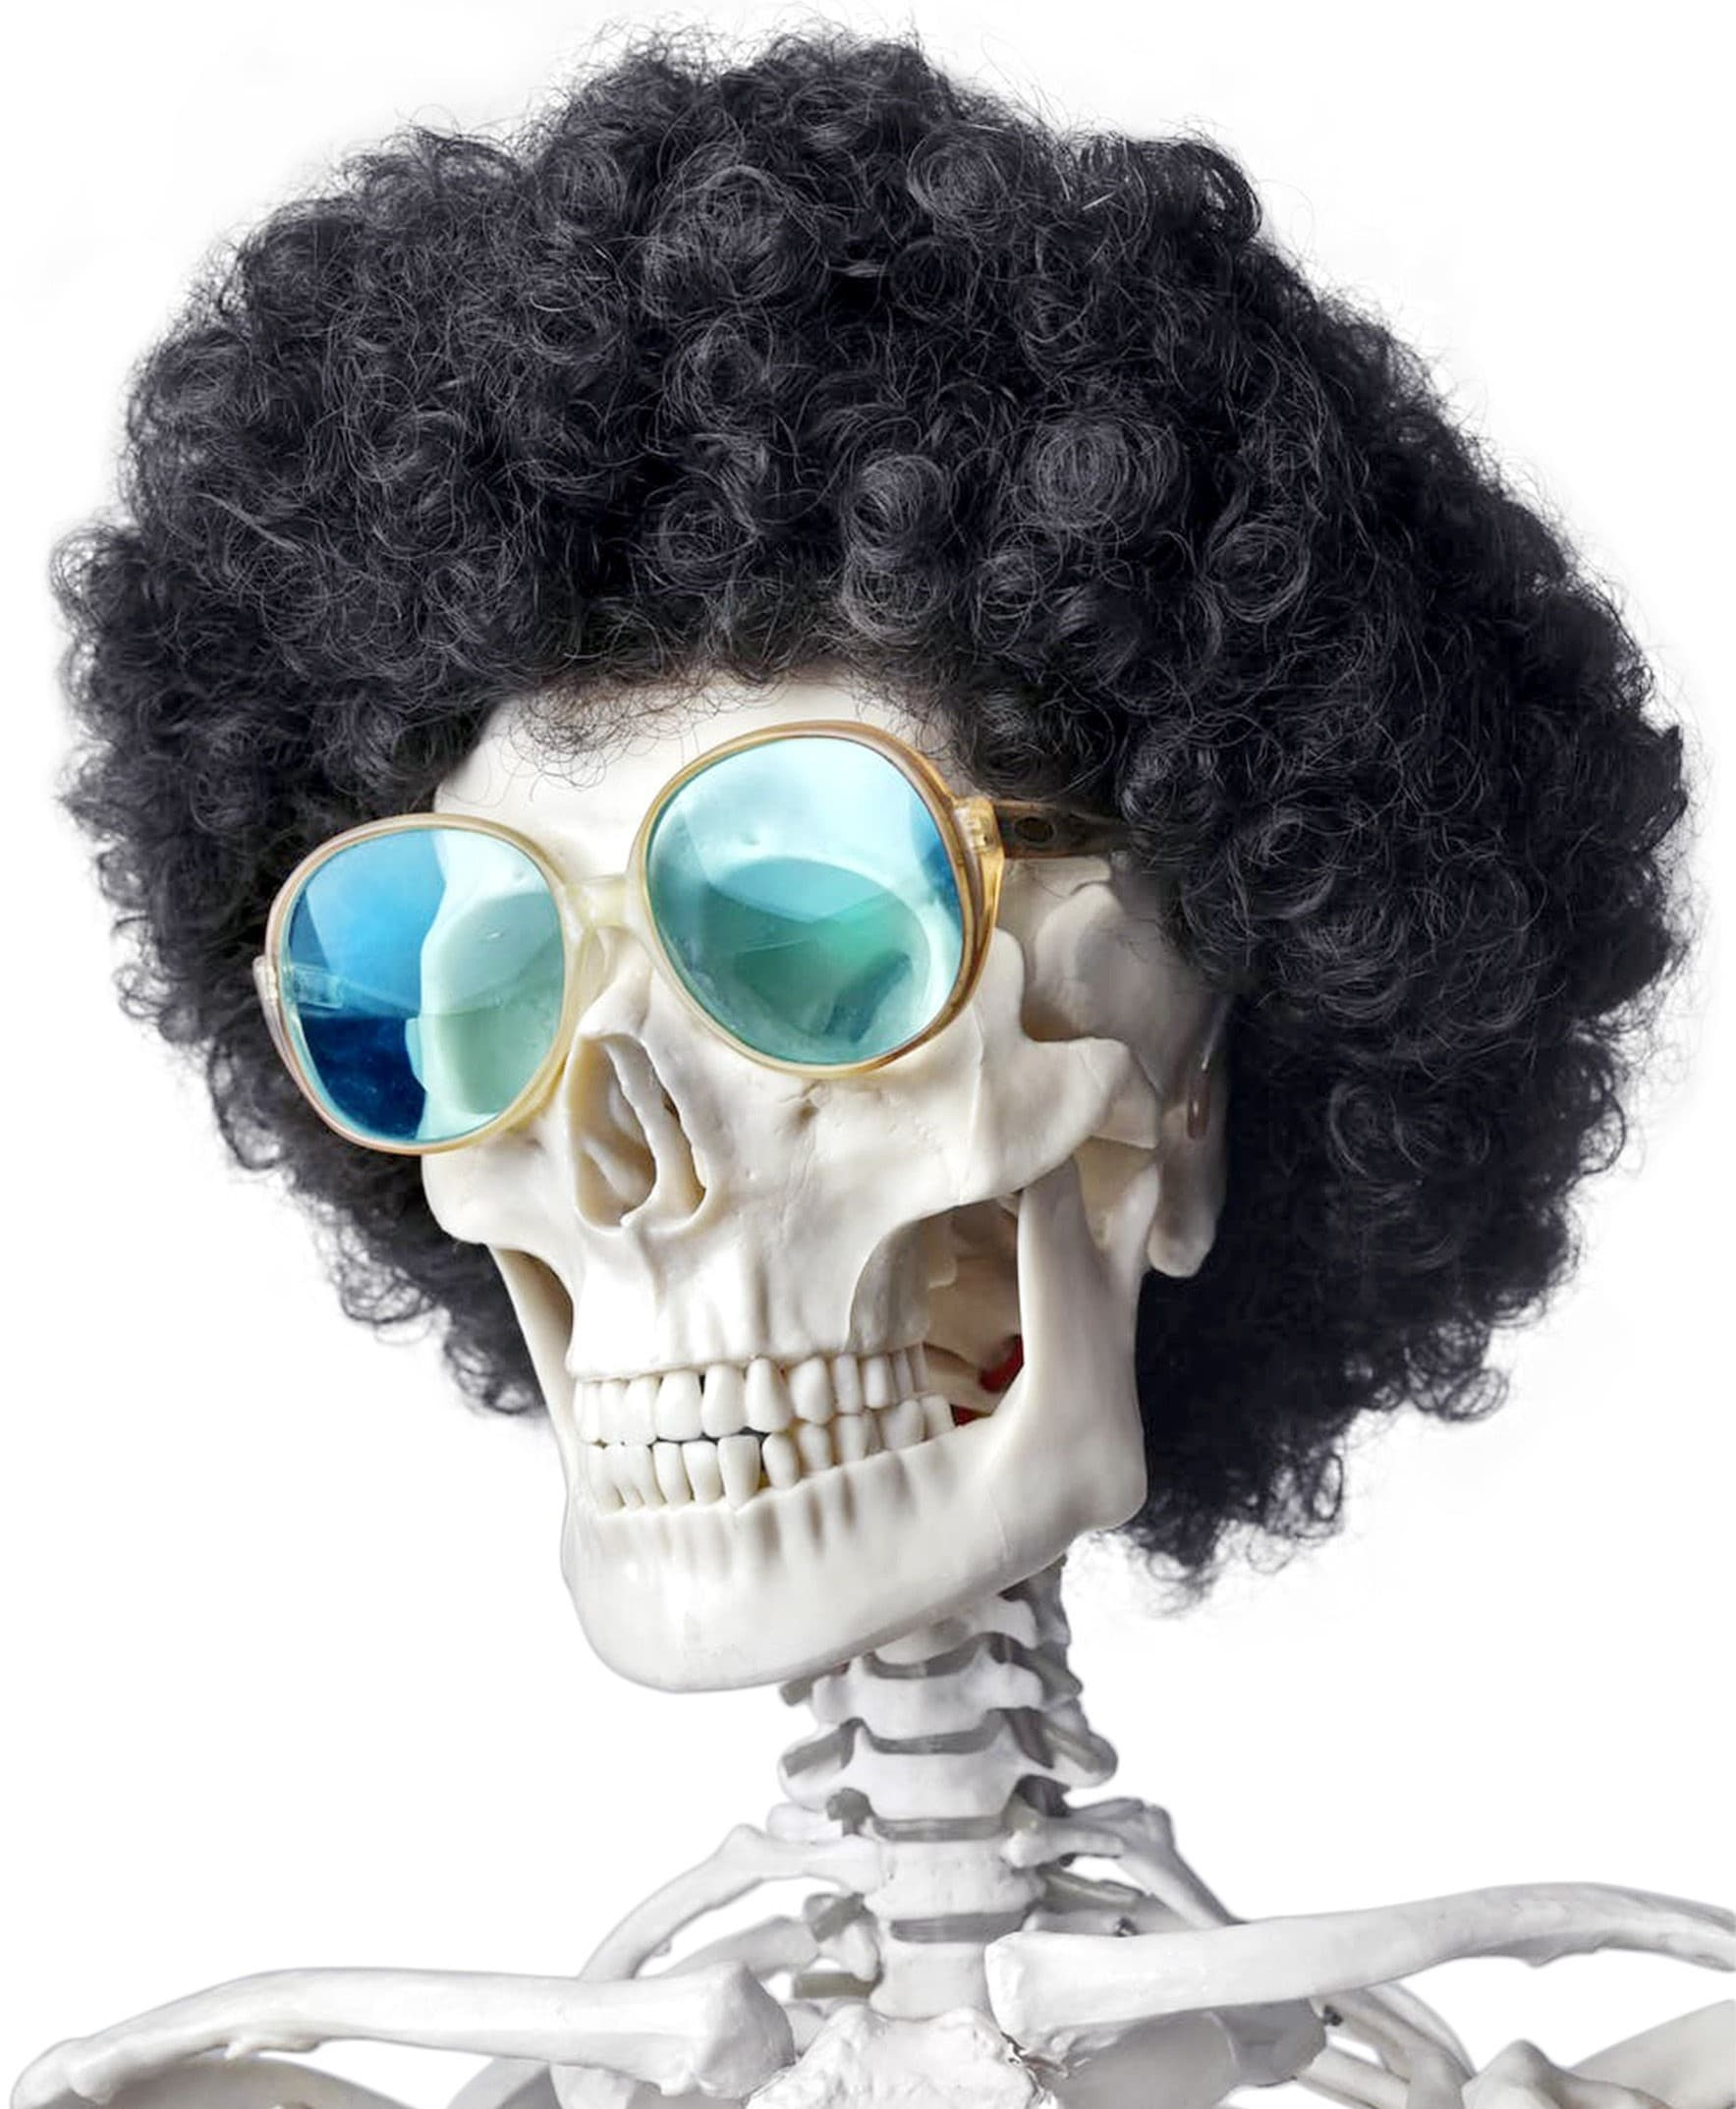 Skeleton with afro and sunglasses